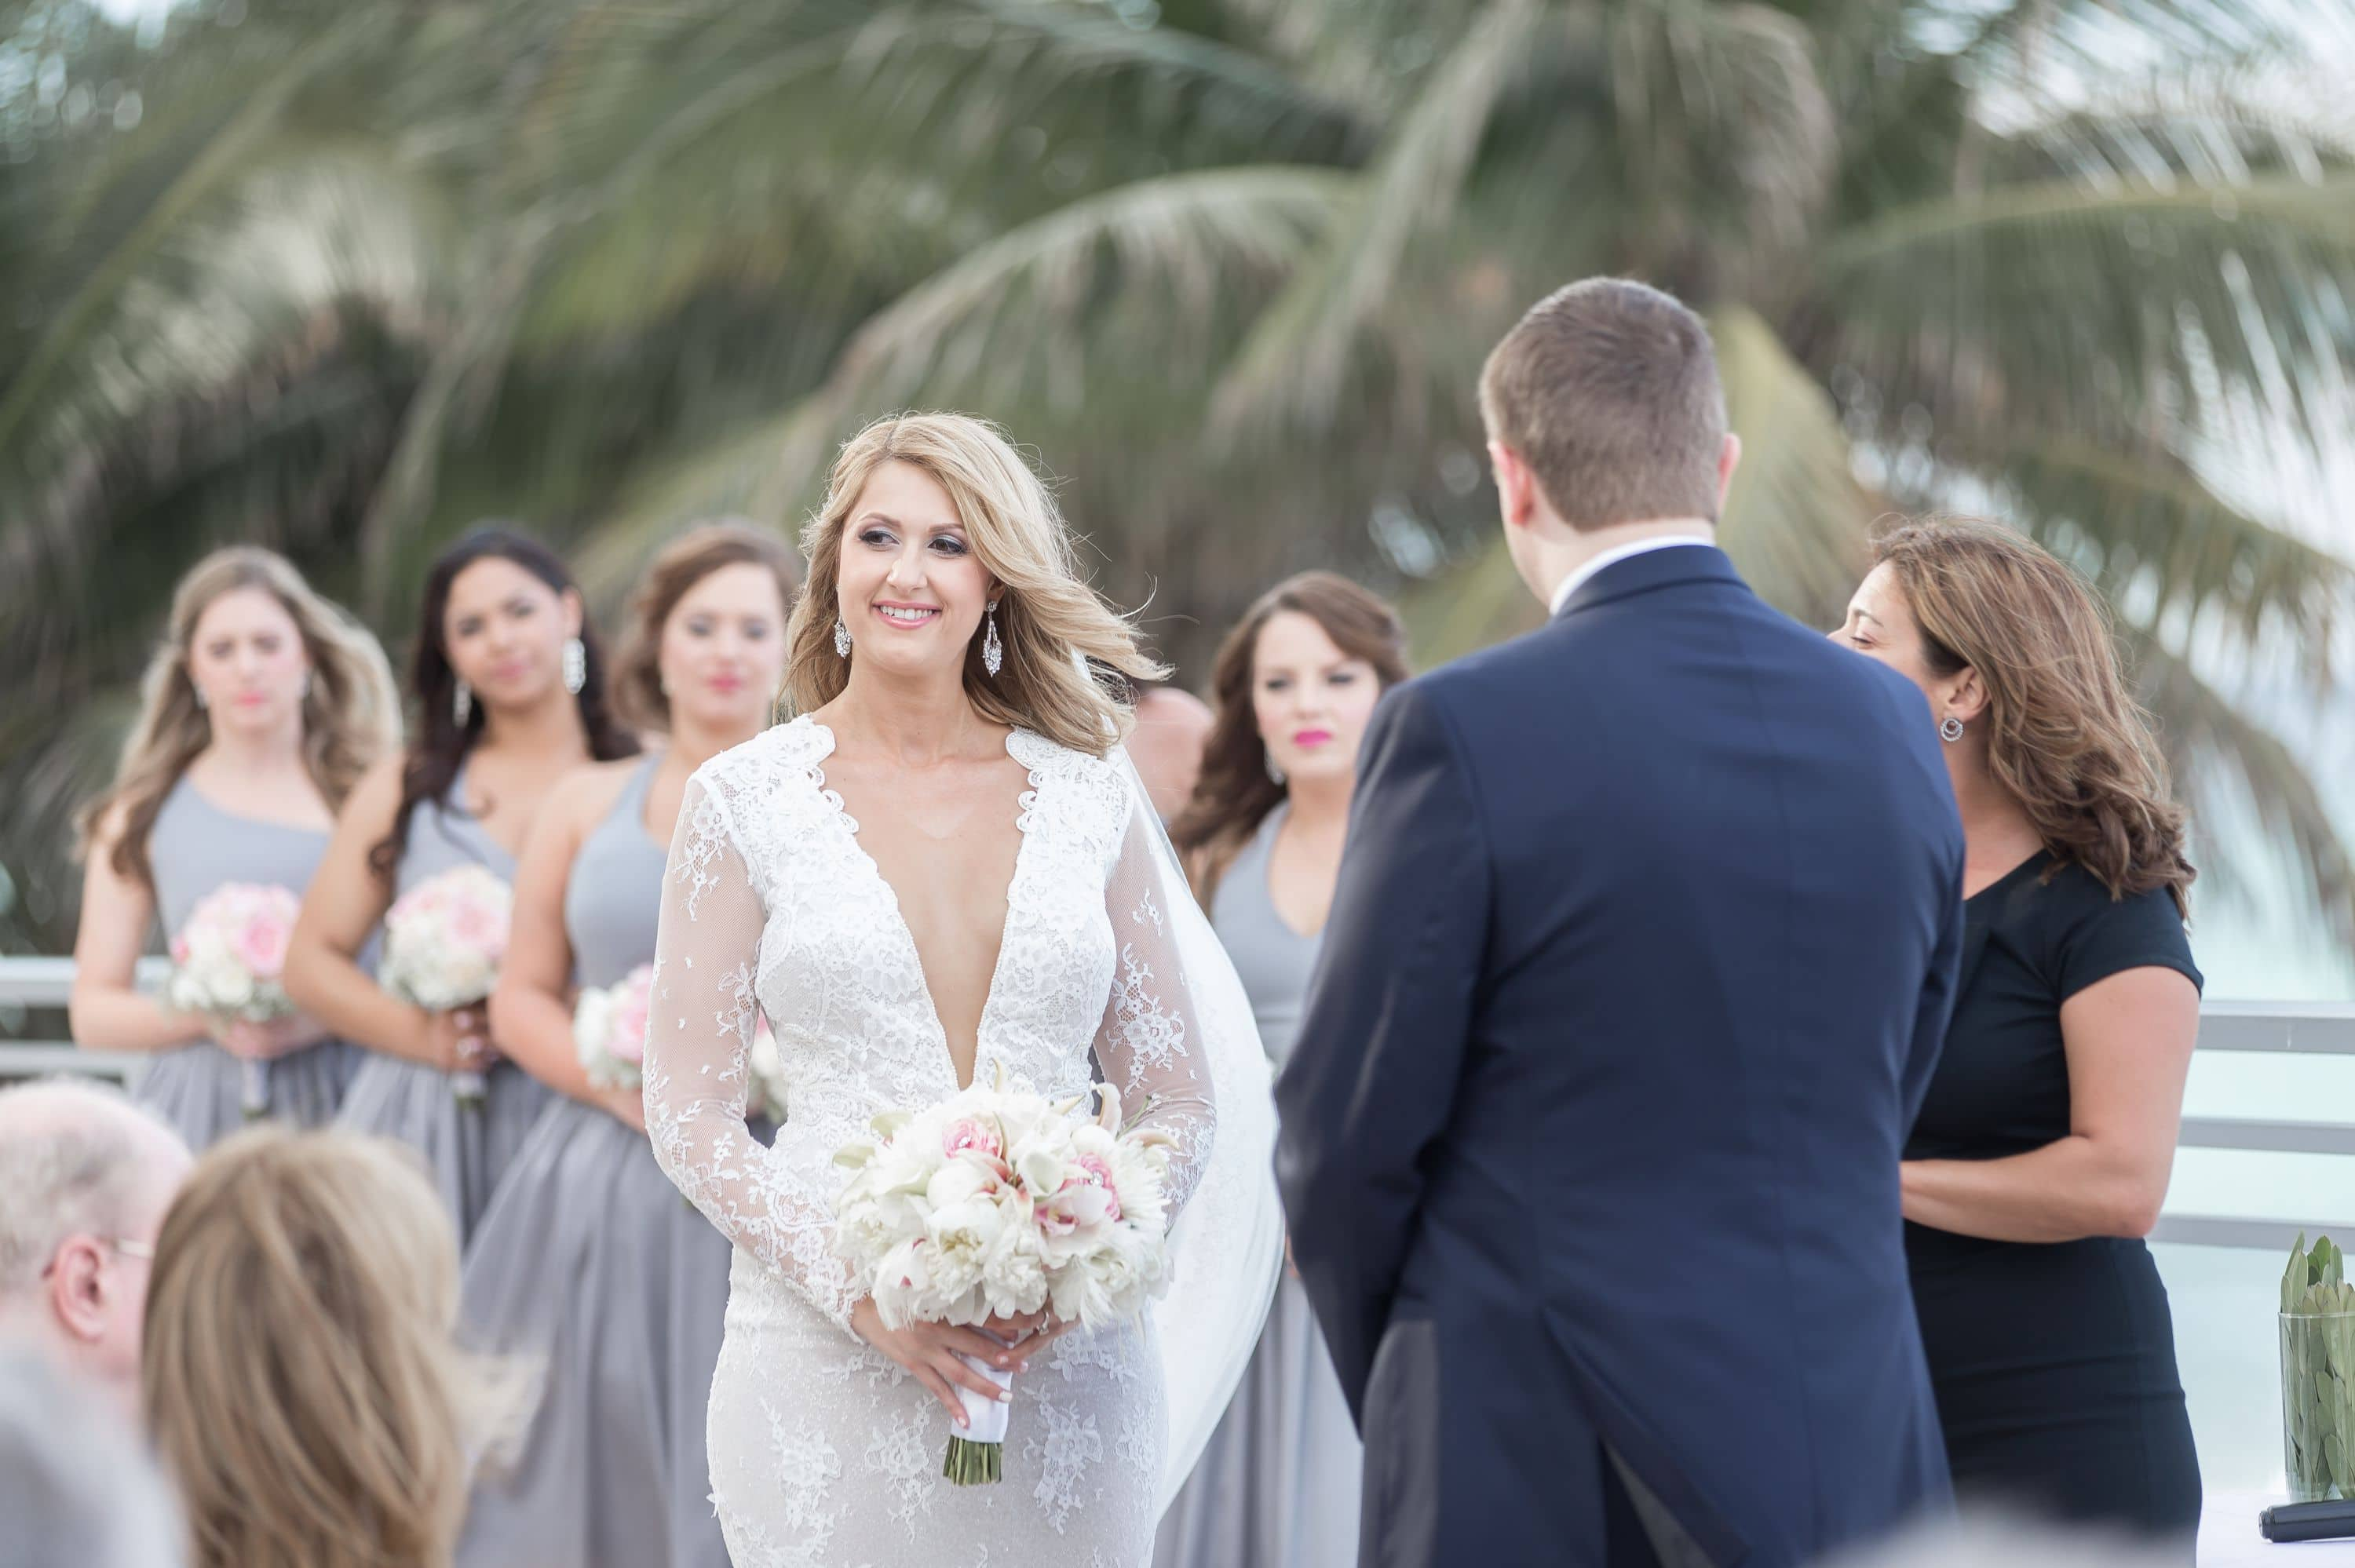 Some candid shots of the bride during the ceremony at this Diplomat Beach Resort Wedding